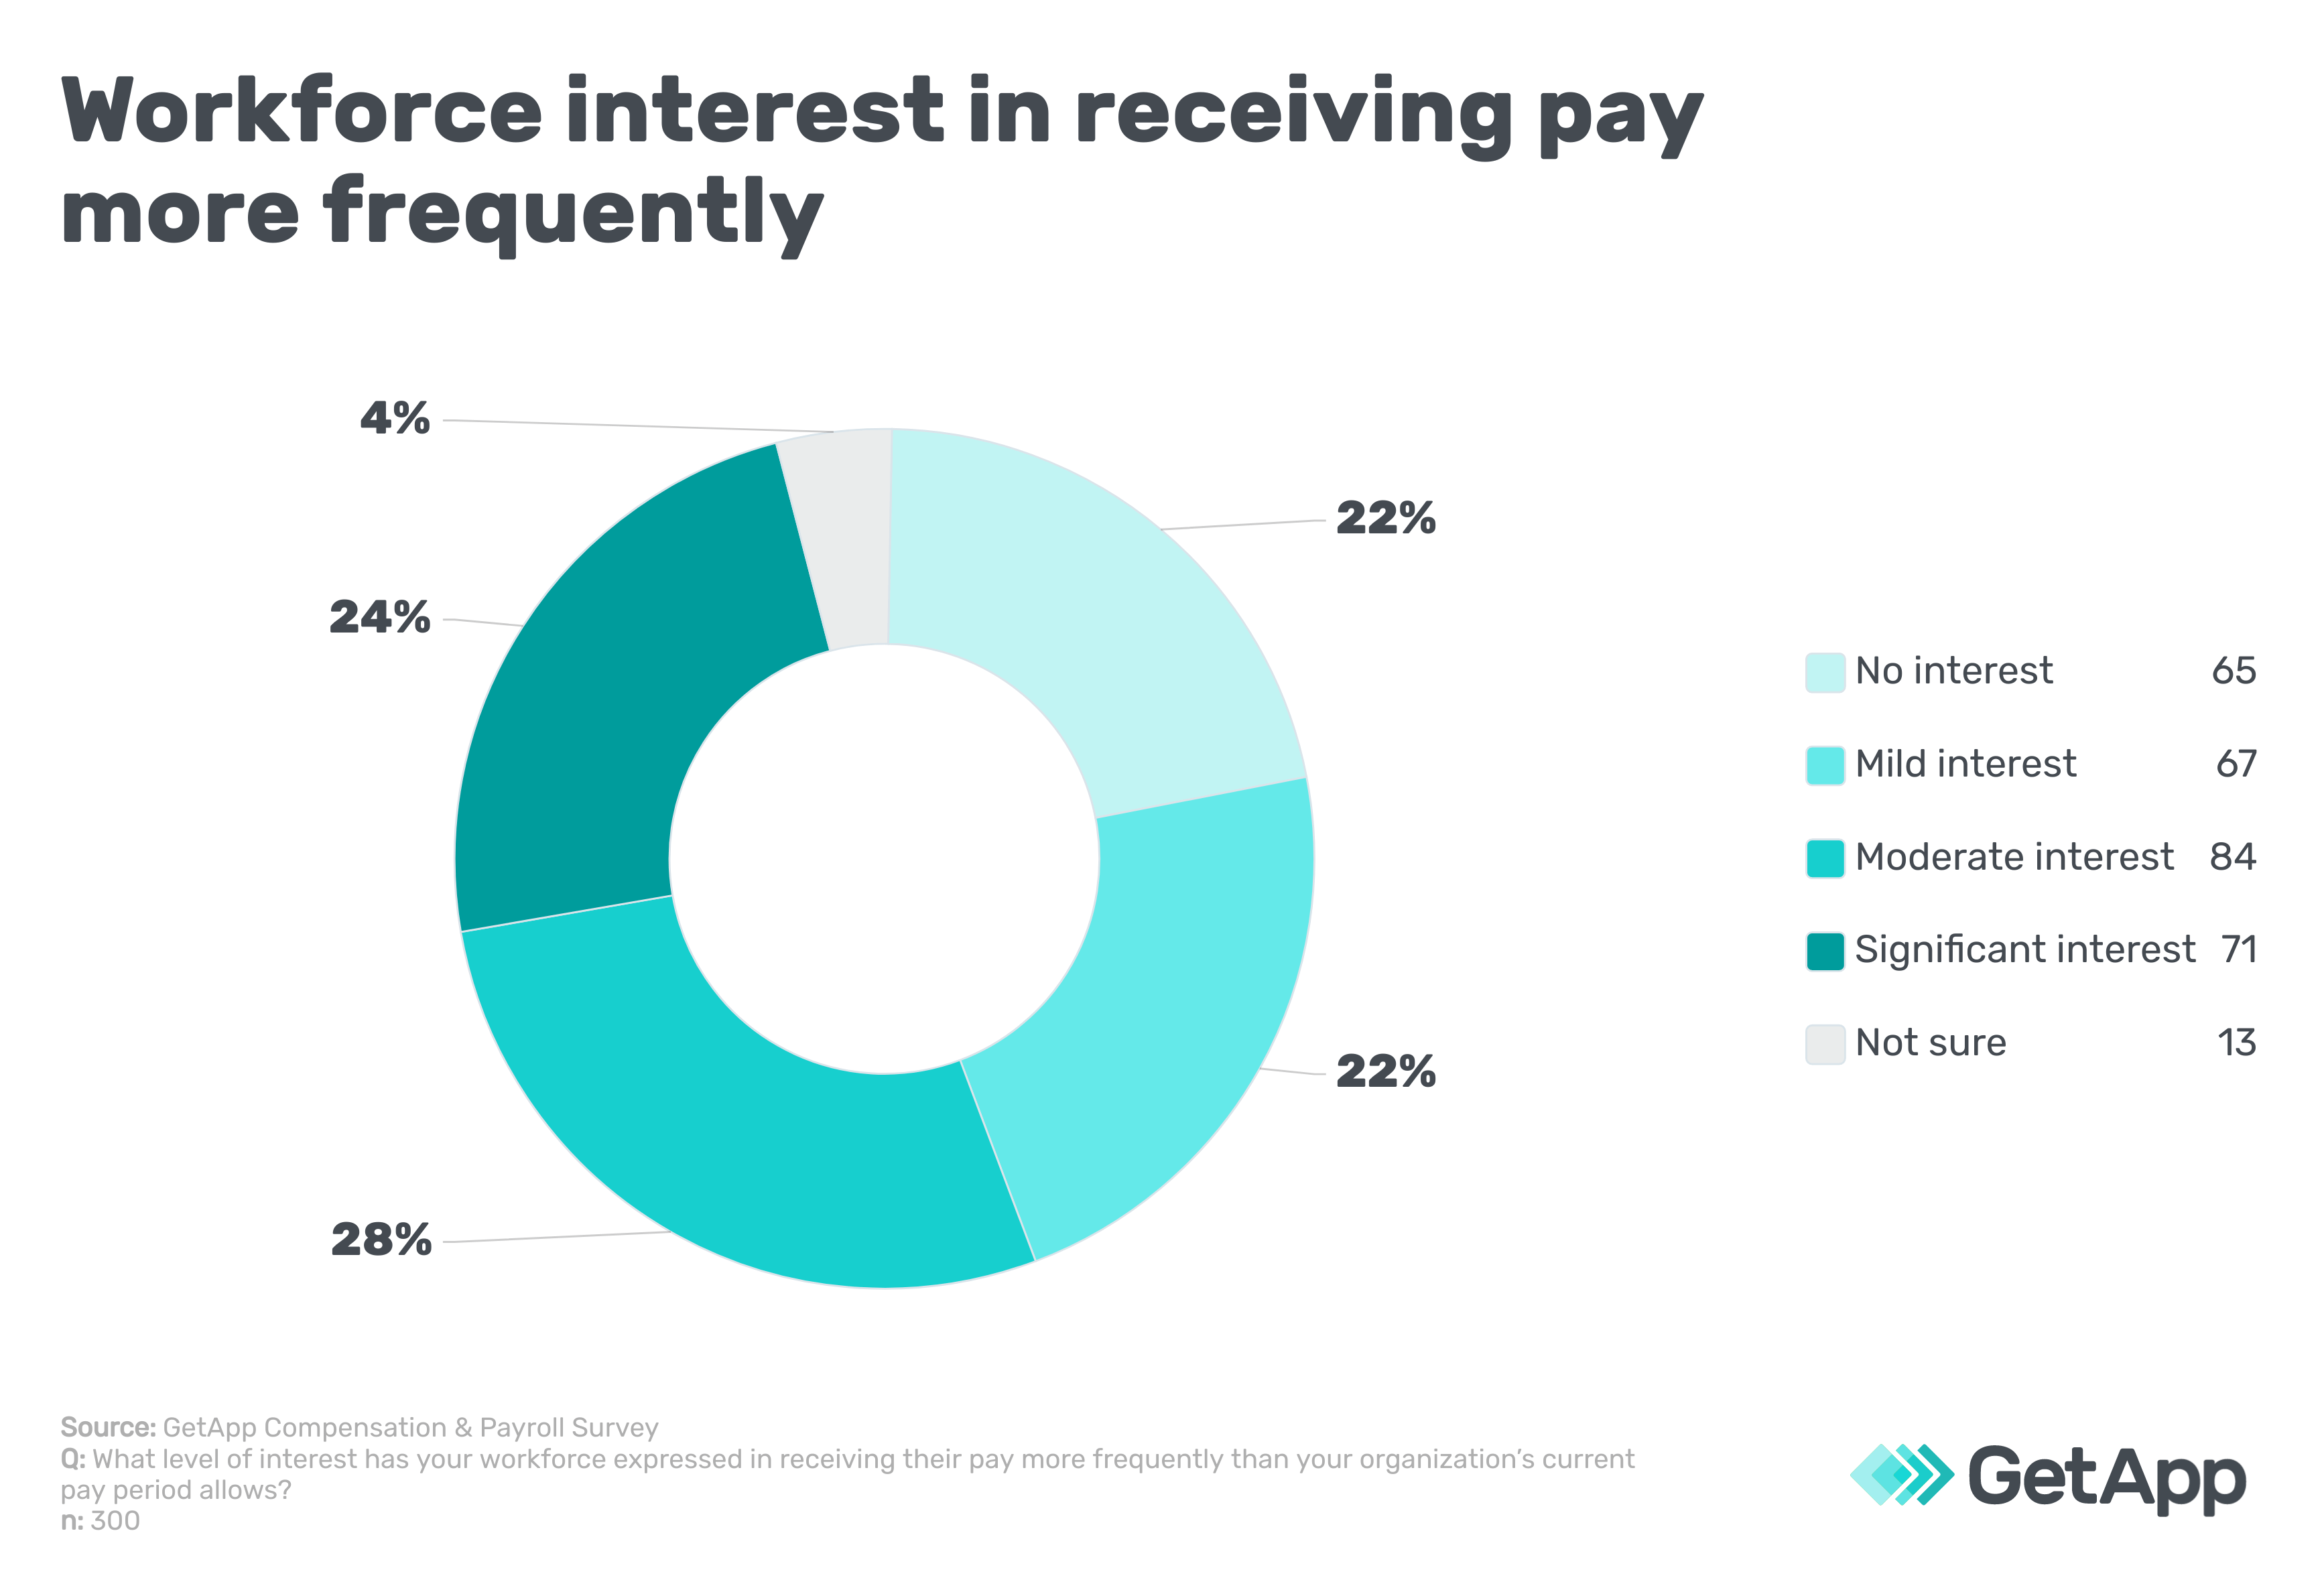 Workforce interest in receiving pay more frequently